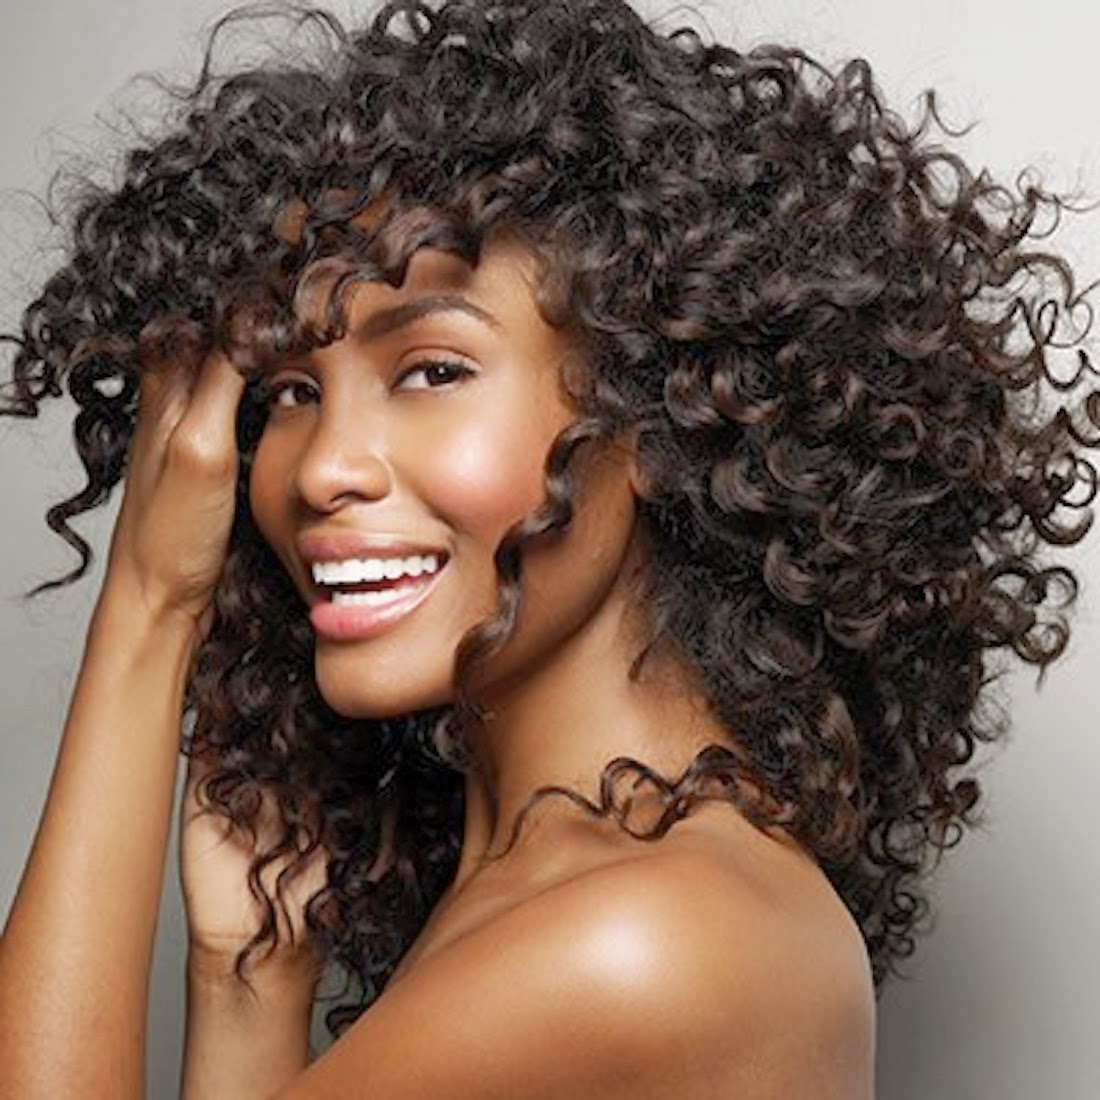 curly-hair-model